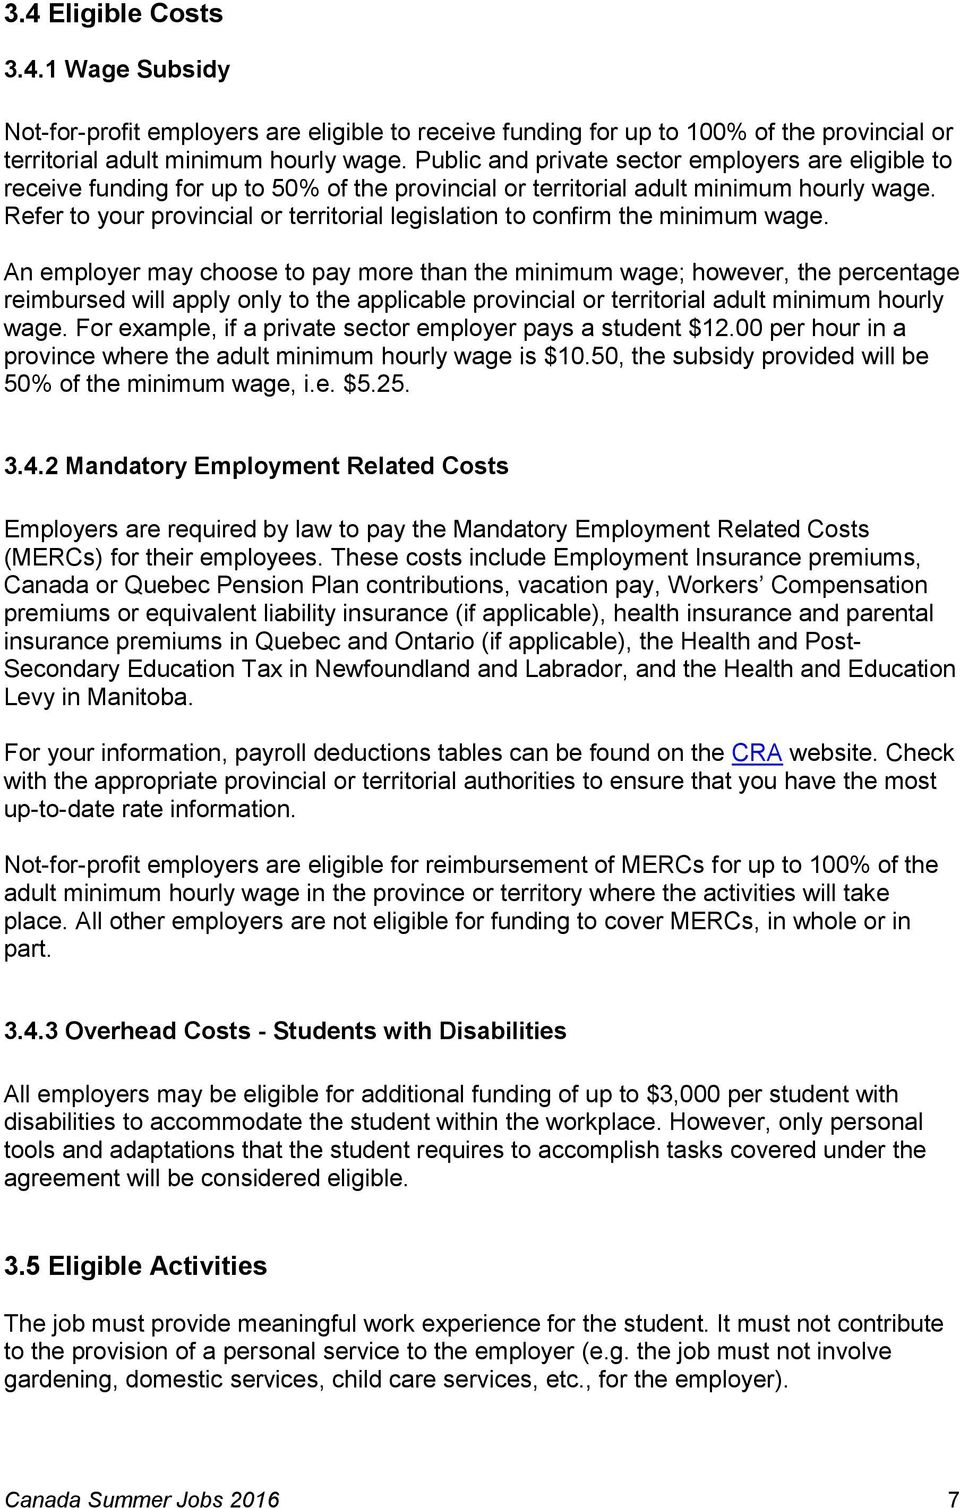 Refer to your provincial or territorial legislation to confirm the minimum wage.